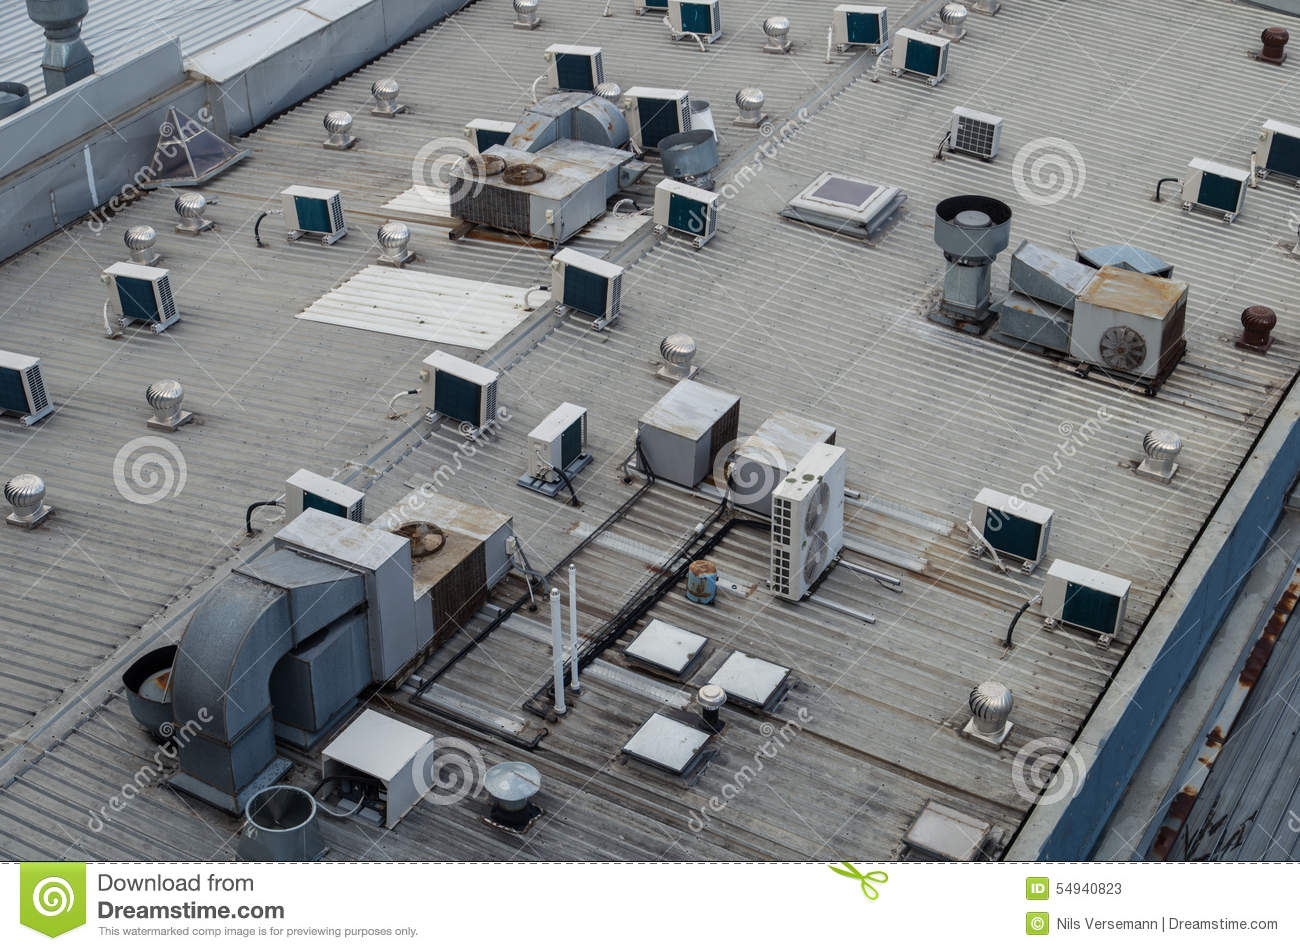 A Building Roof With Multiple Air Conditioning Units Stock